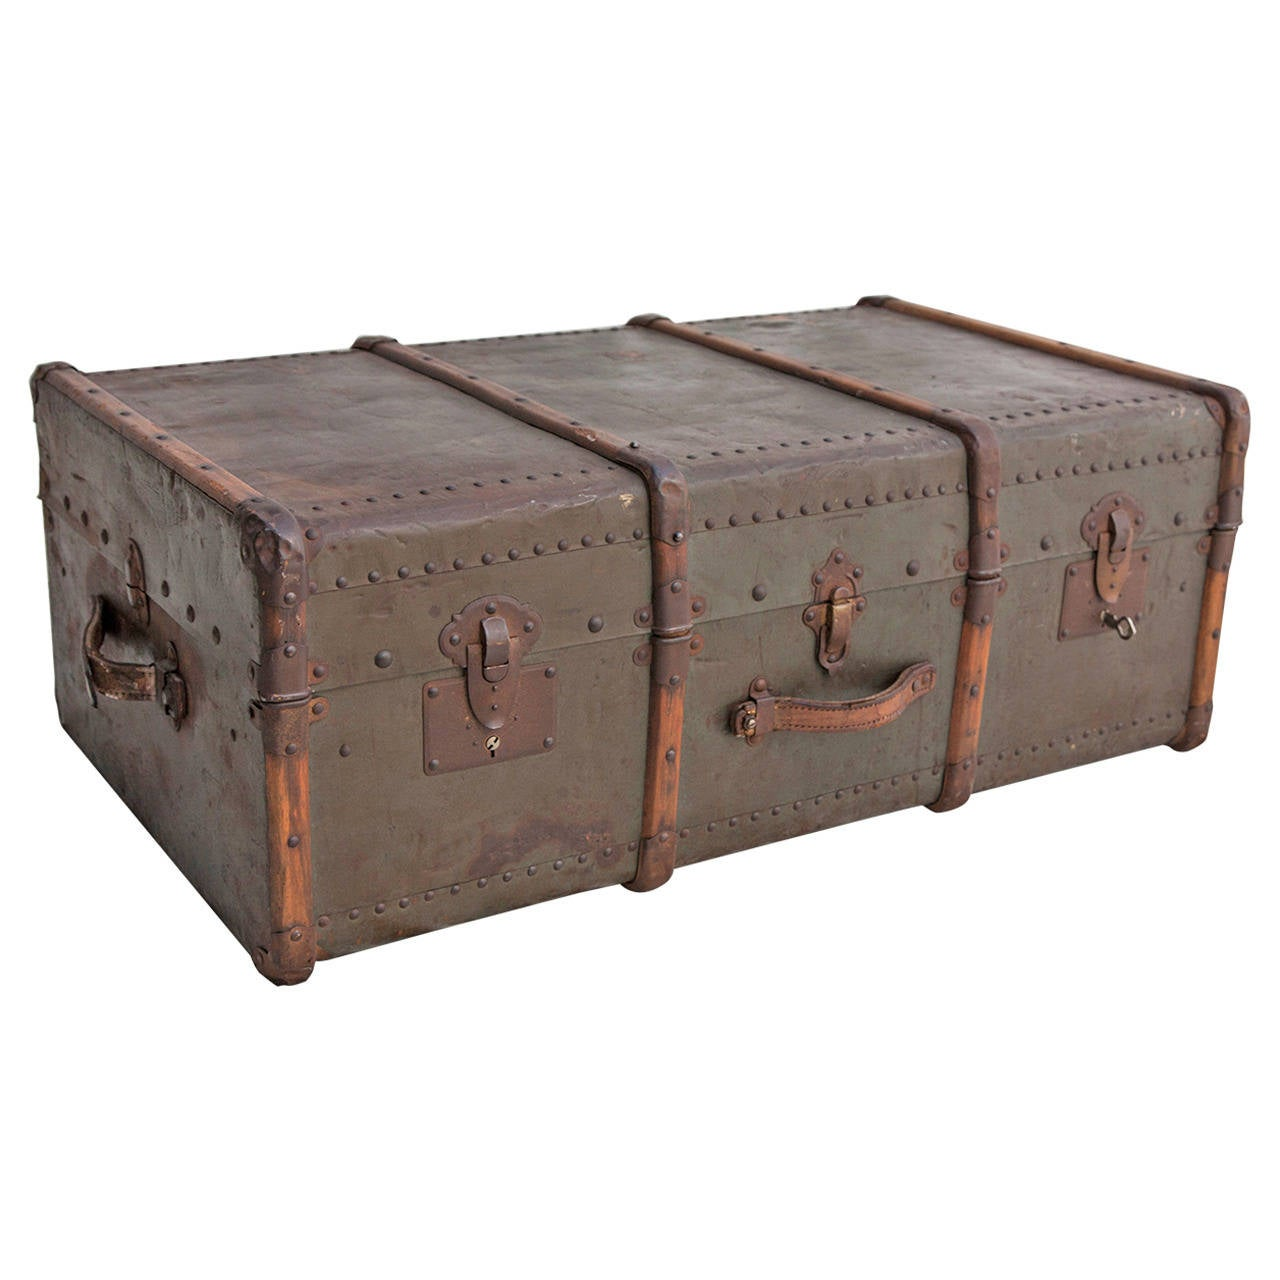 Riveted Metal Traveling Trunk with Wooden Runners 1